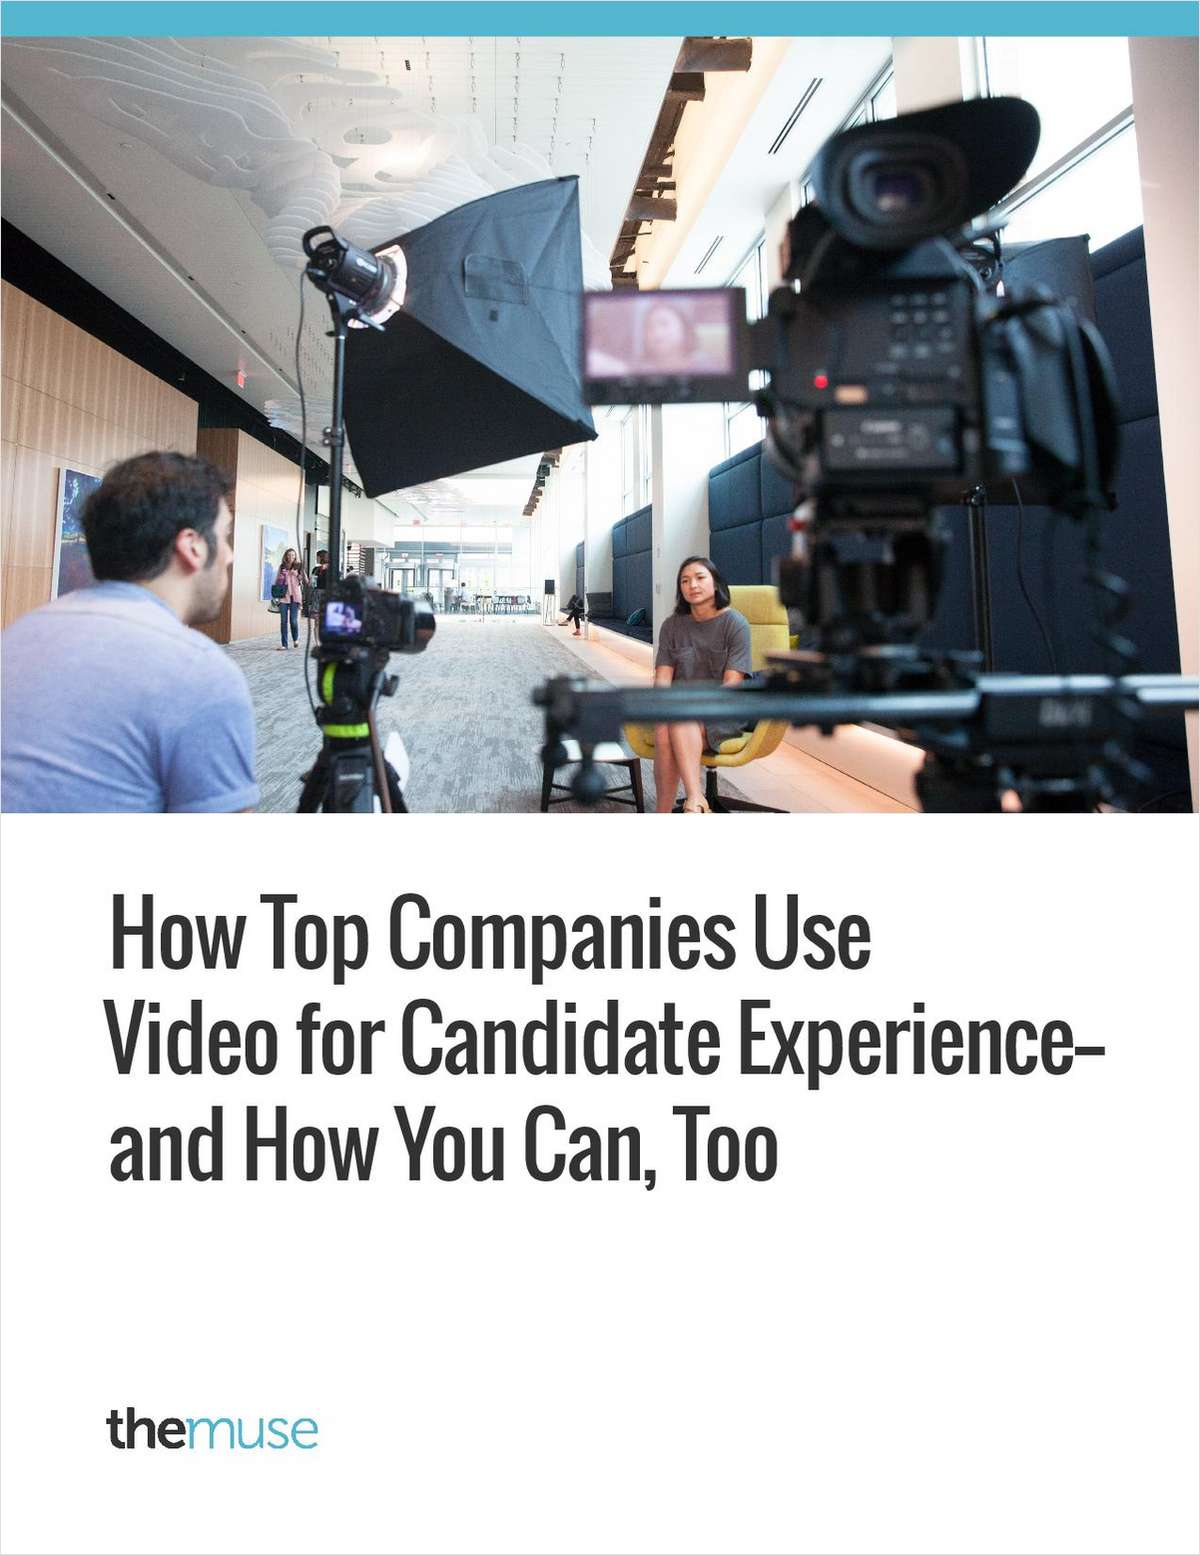 How Top Companies Use Video for Candidate Experience- And How You Can, Too